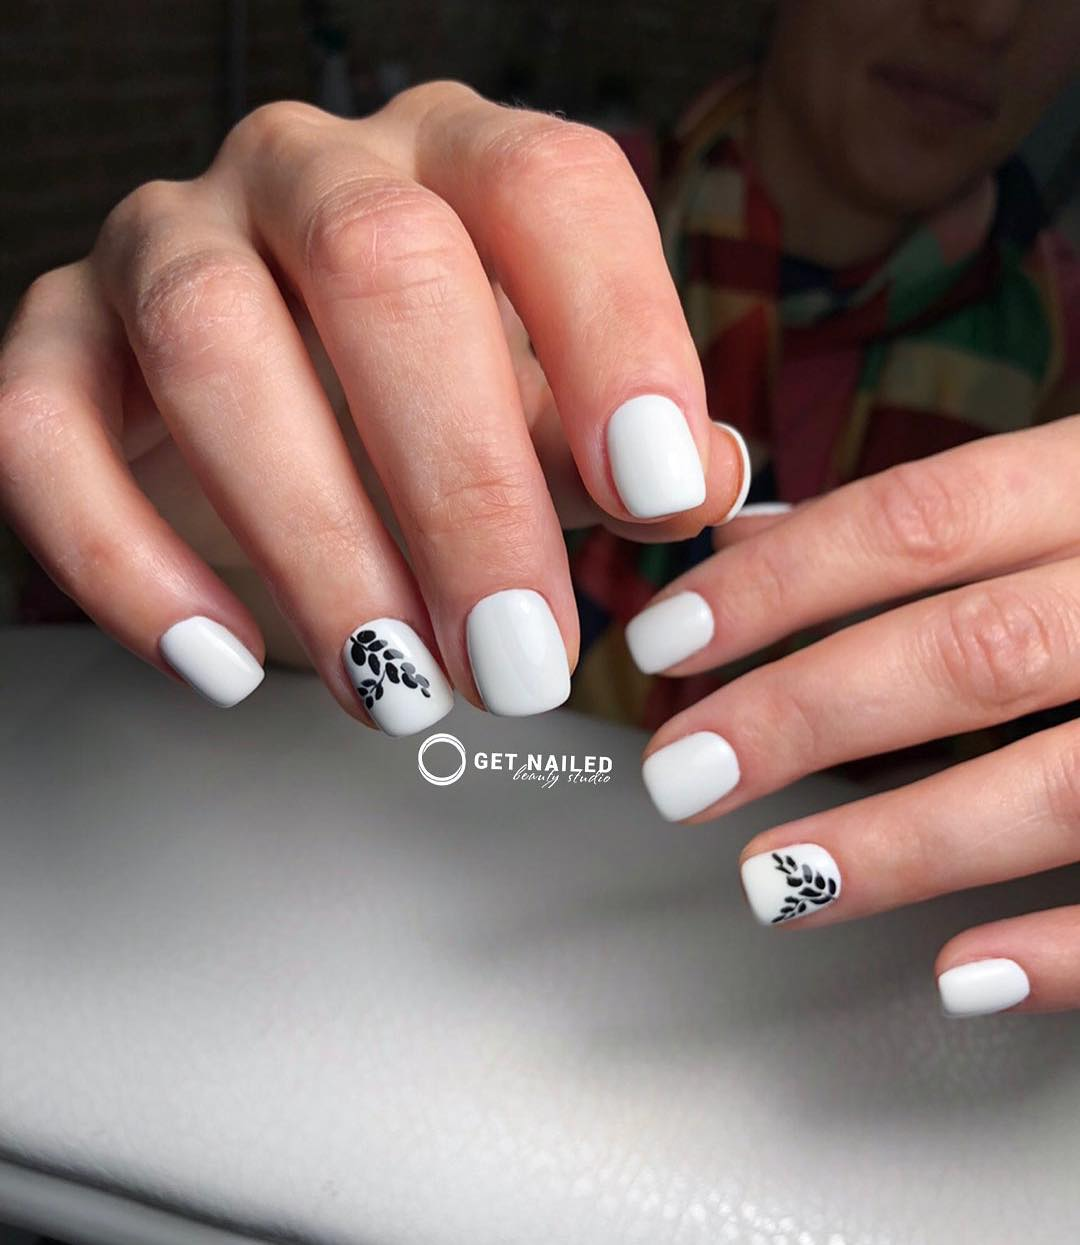 Plants on white Nails done by Corina LinuYou can book your appointment on getnailed.co, through DM, WhatsApp +34 680 576 151 or simply by leaving a comment ..luxiogel